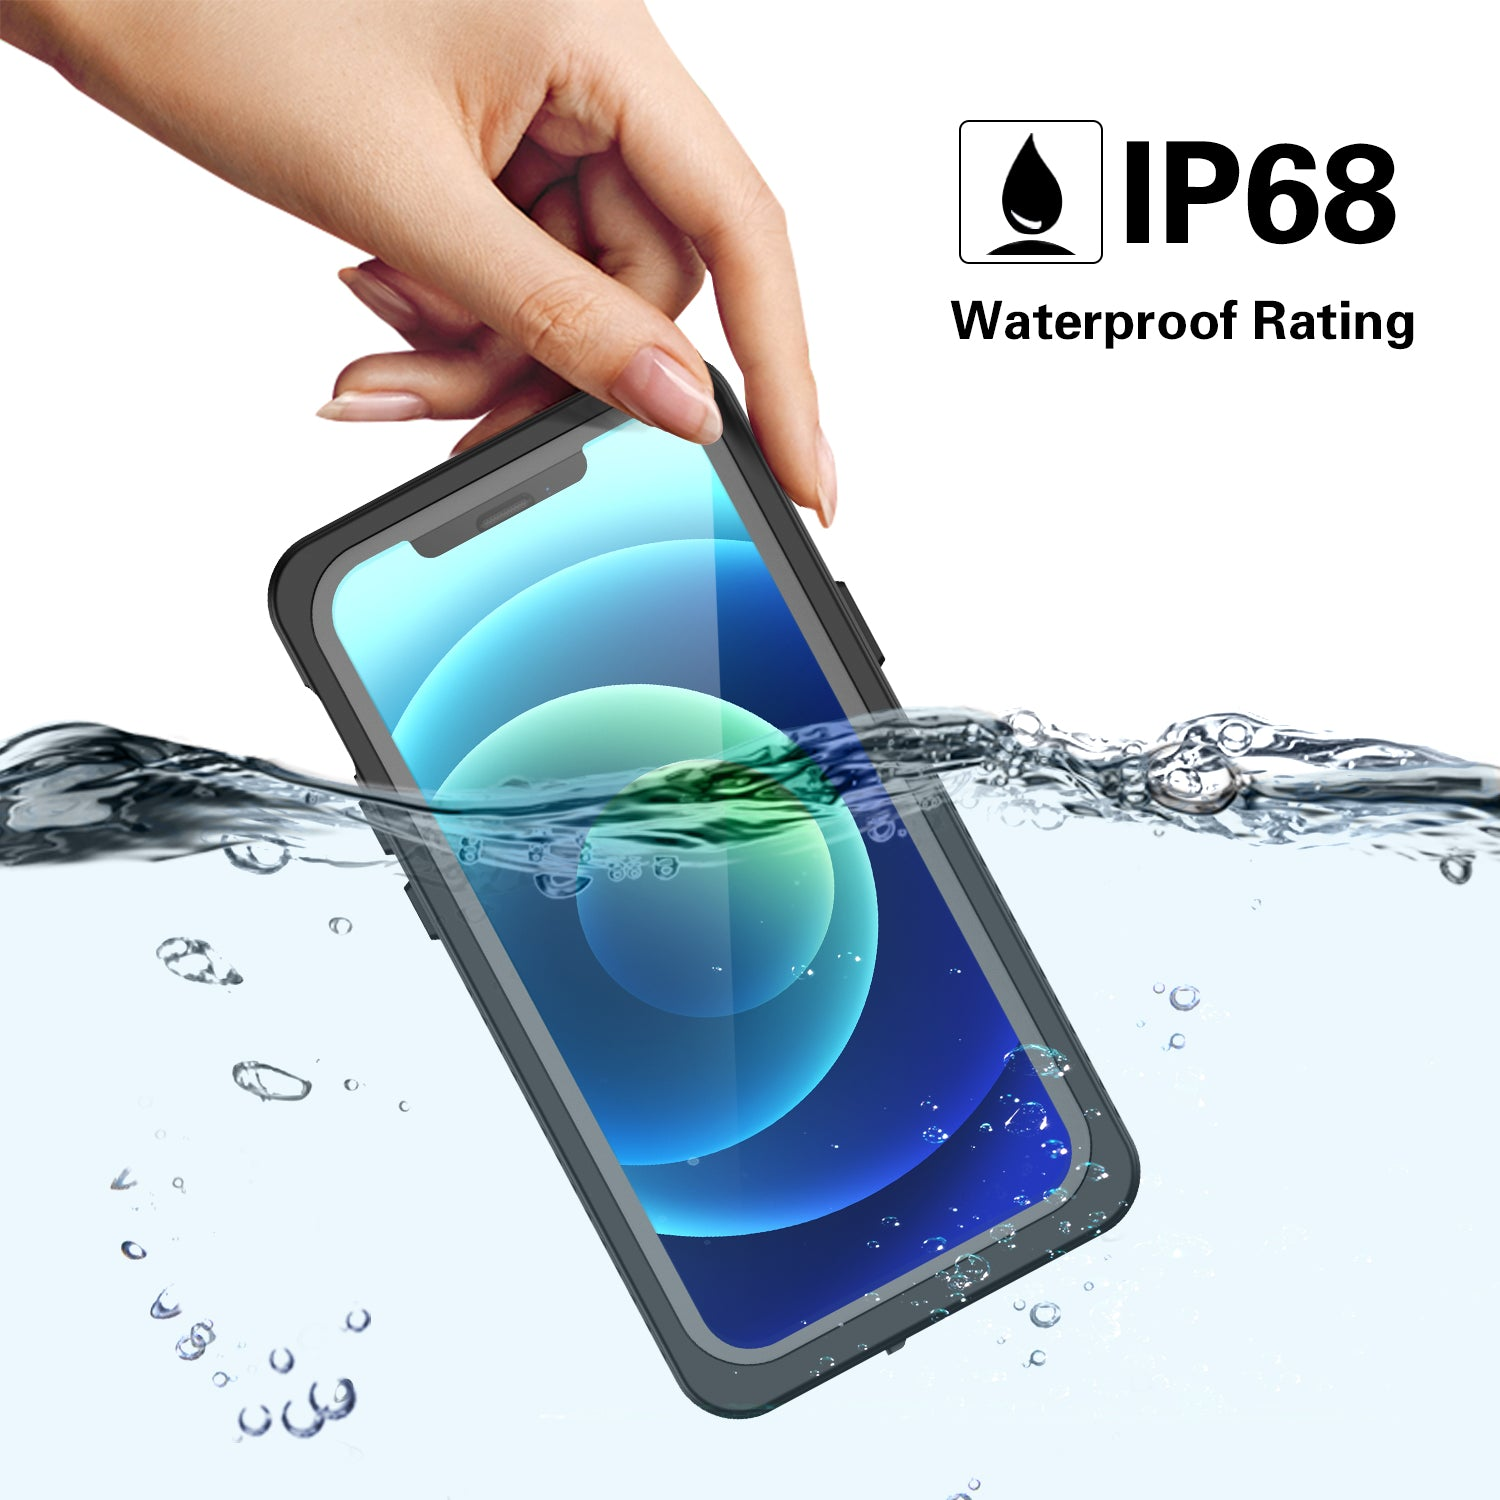 Redpepper_iPhone_12_Pro_IP68_waterproof_SJ45G8RWGDSK.jpg